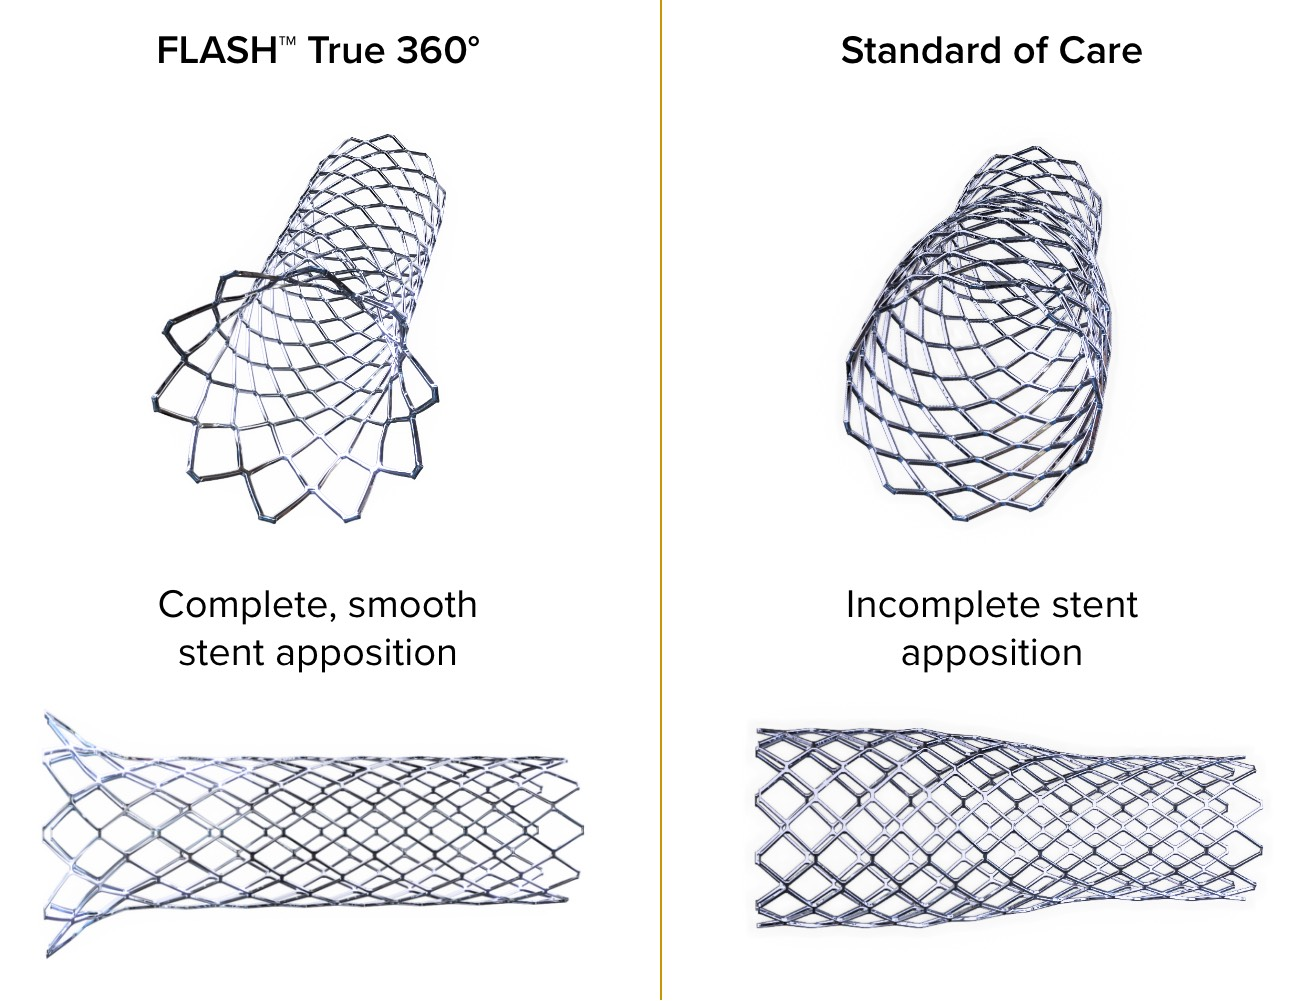 flash-vs-standard-of-care@2x